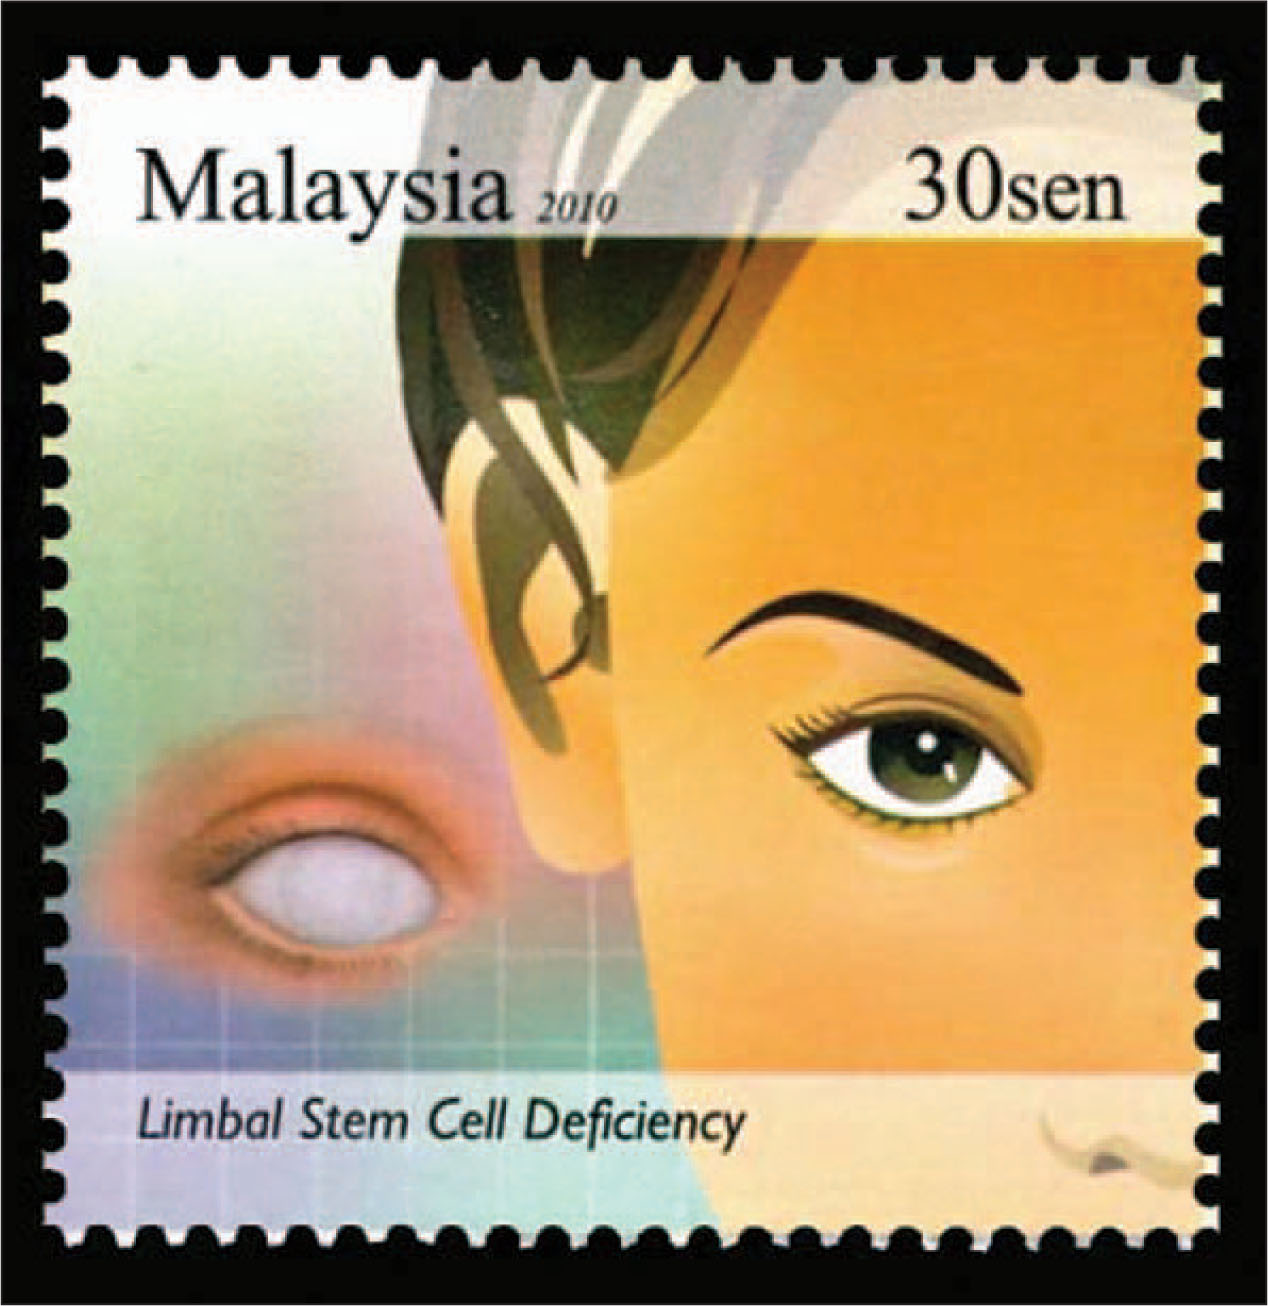 The Stamp from Malaysia Showing a Right Eye Was Issued to Emphasize Treatment of Limbal Stem Cell Deficiency.